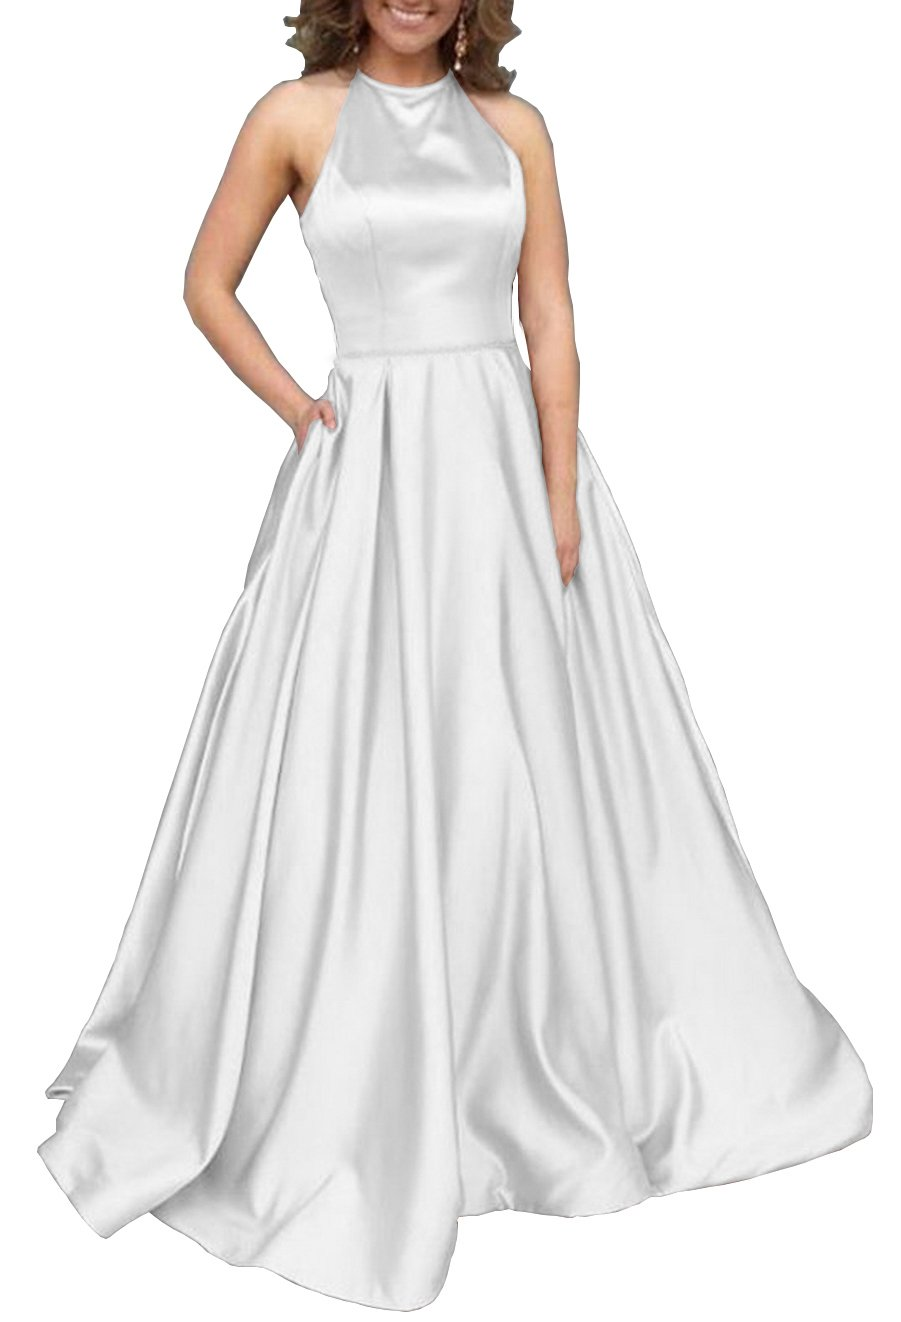 Halter A-line Satin Plus Size Beach Wedding Dress Formal Evening Gown with  Pockets Size 22 White